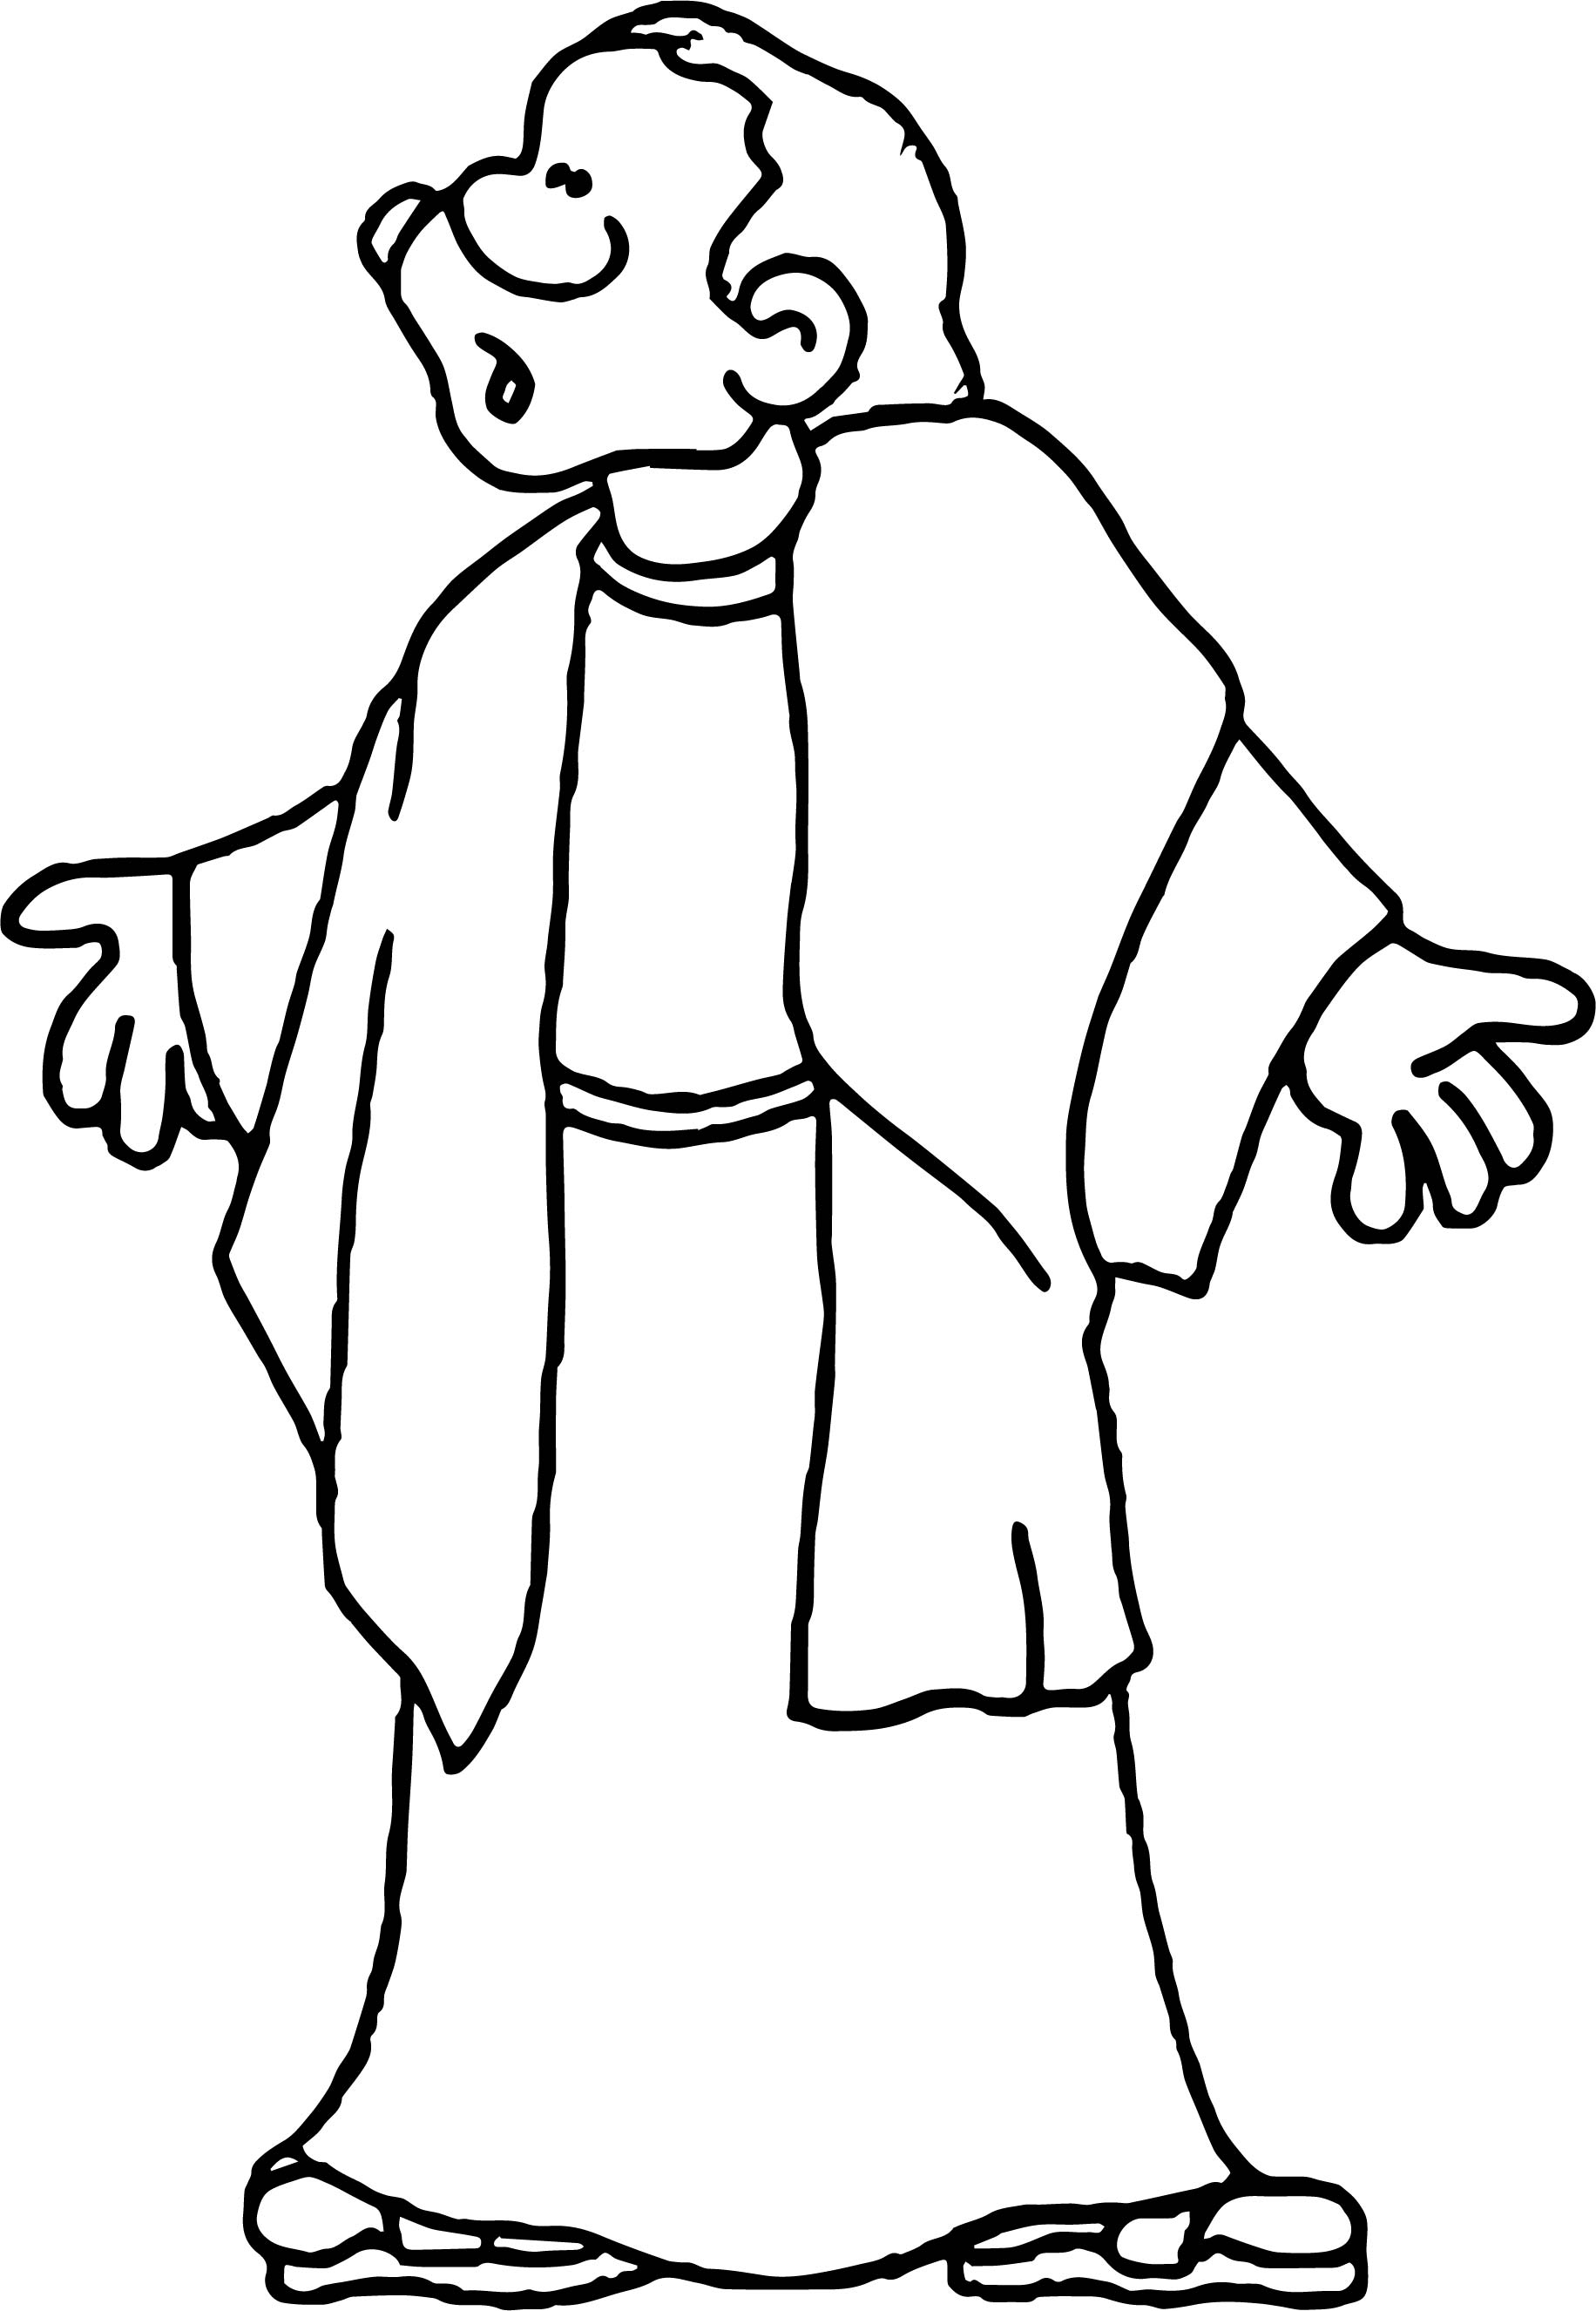 Apostle paul coloring page coloring pages for Apostle paul coloring page